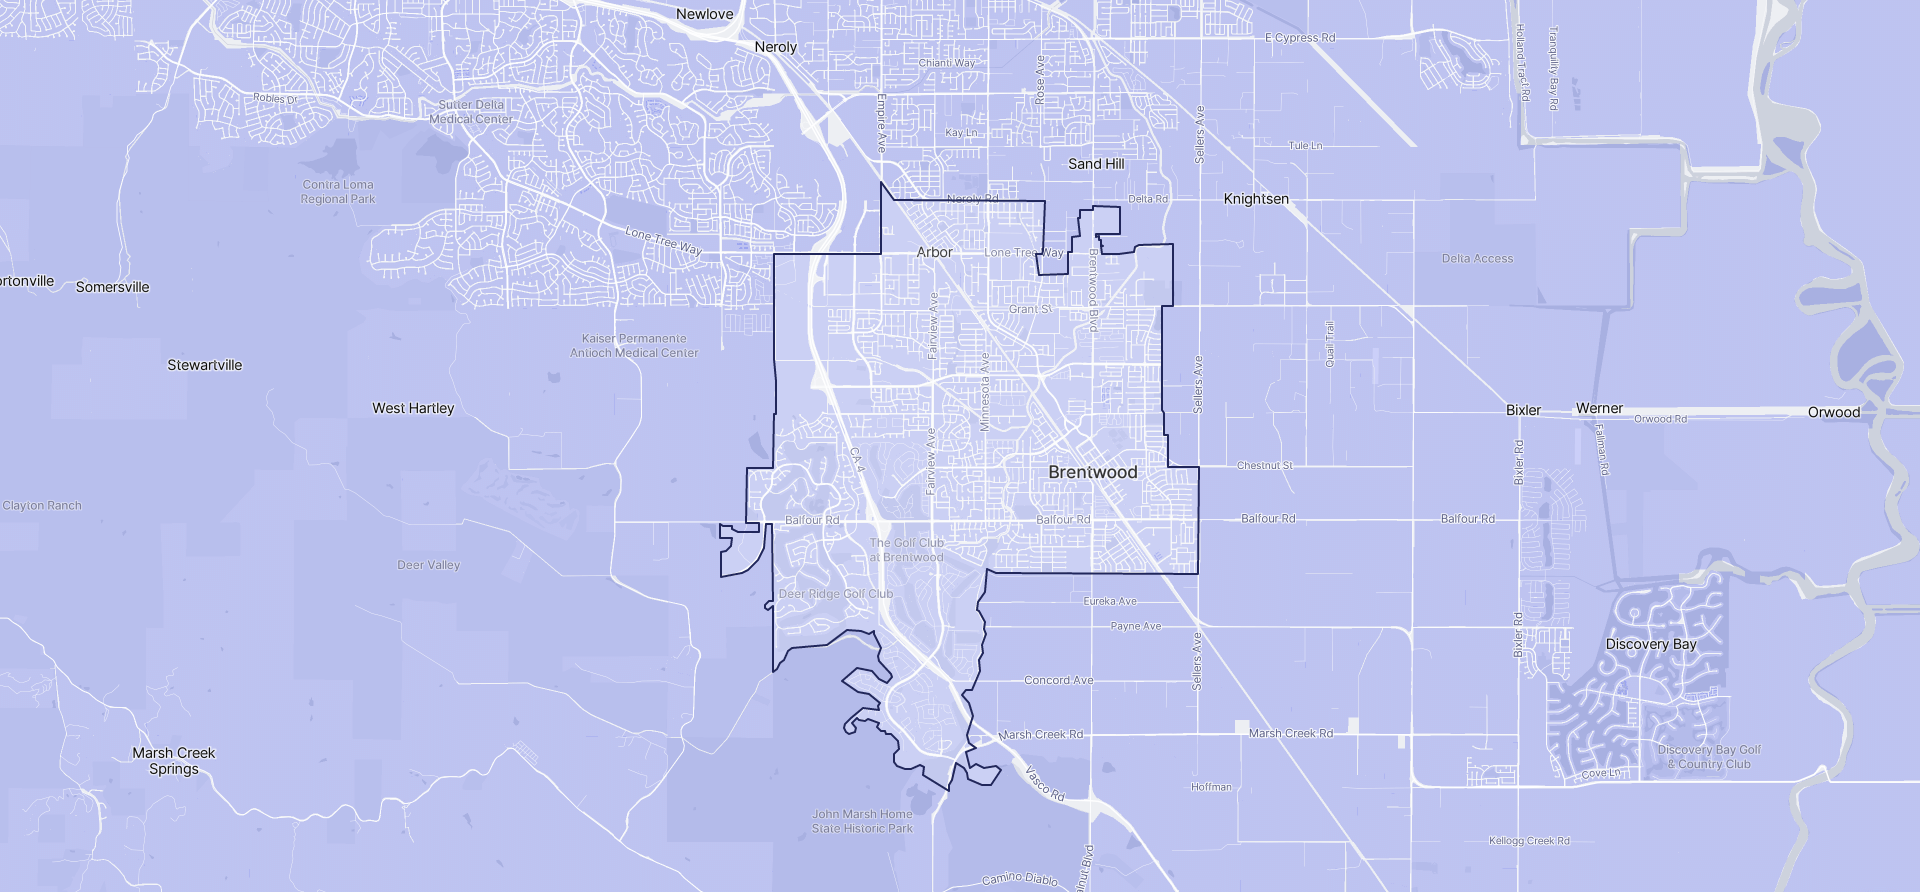 Image of Brentwood boundaries on a map.